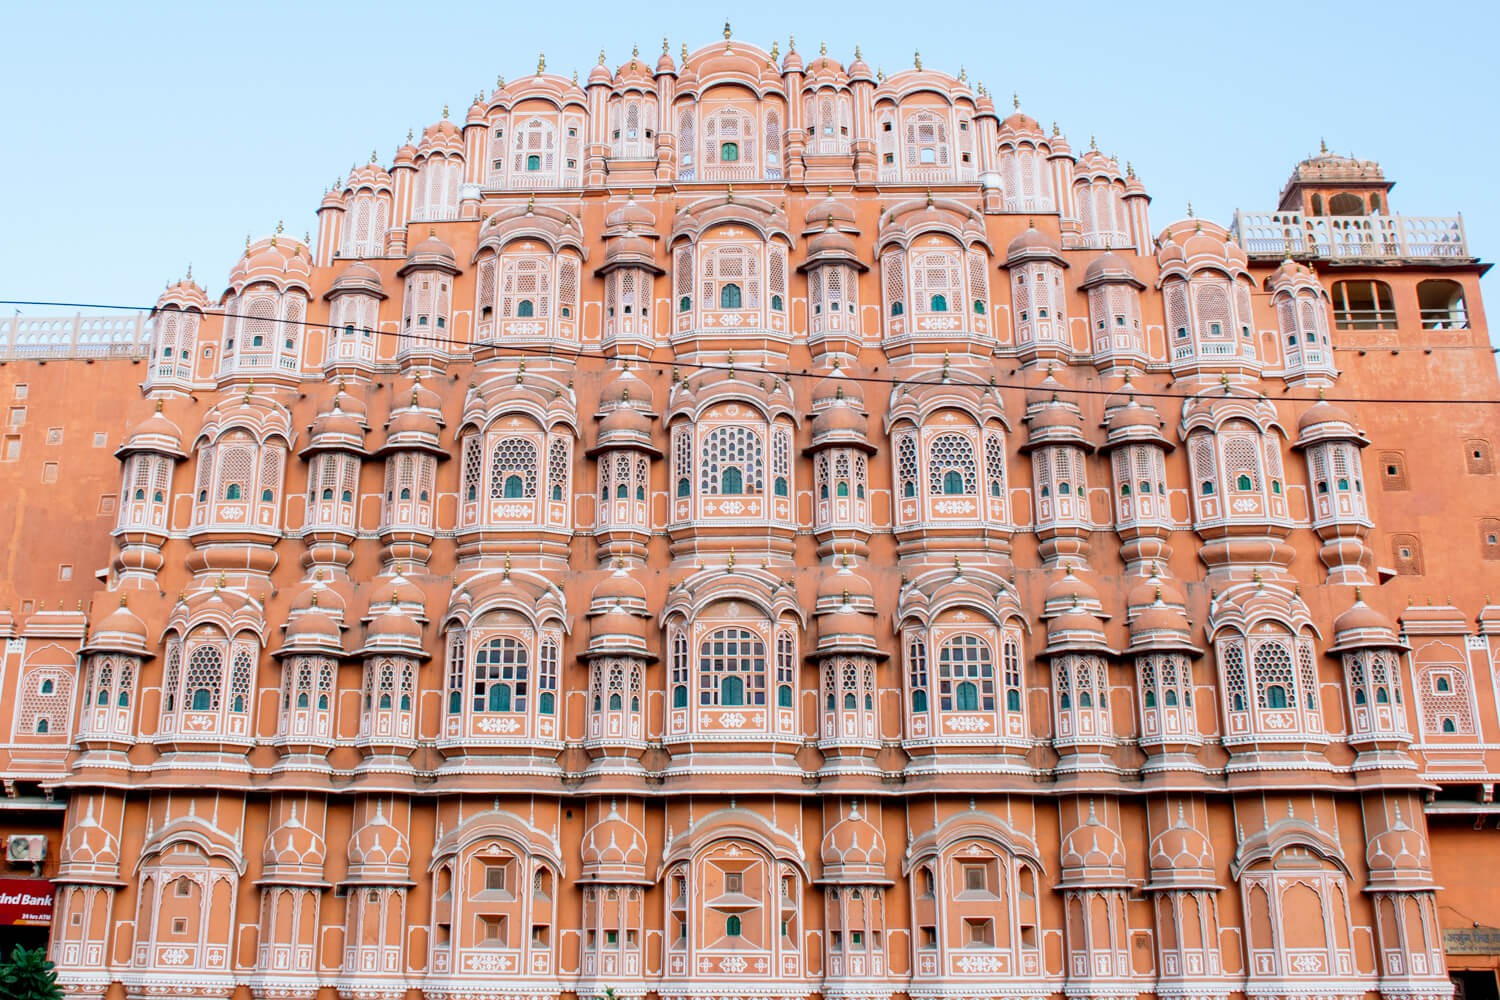 Jaipur: The Ancient 'Pink City' of Rajasthan